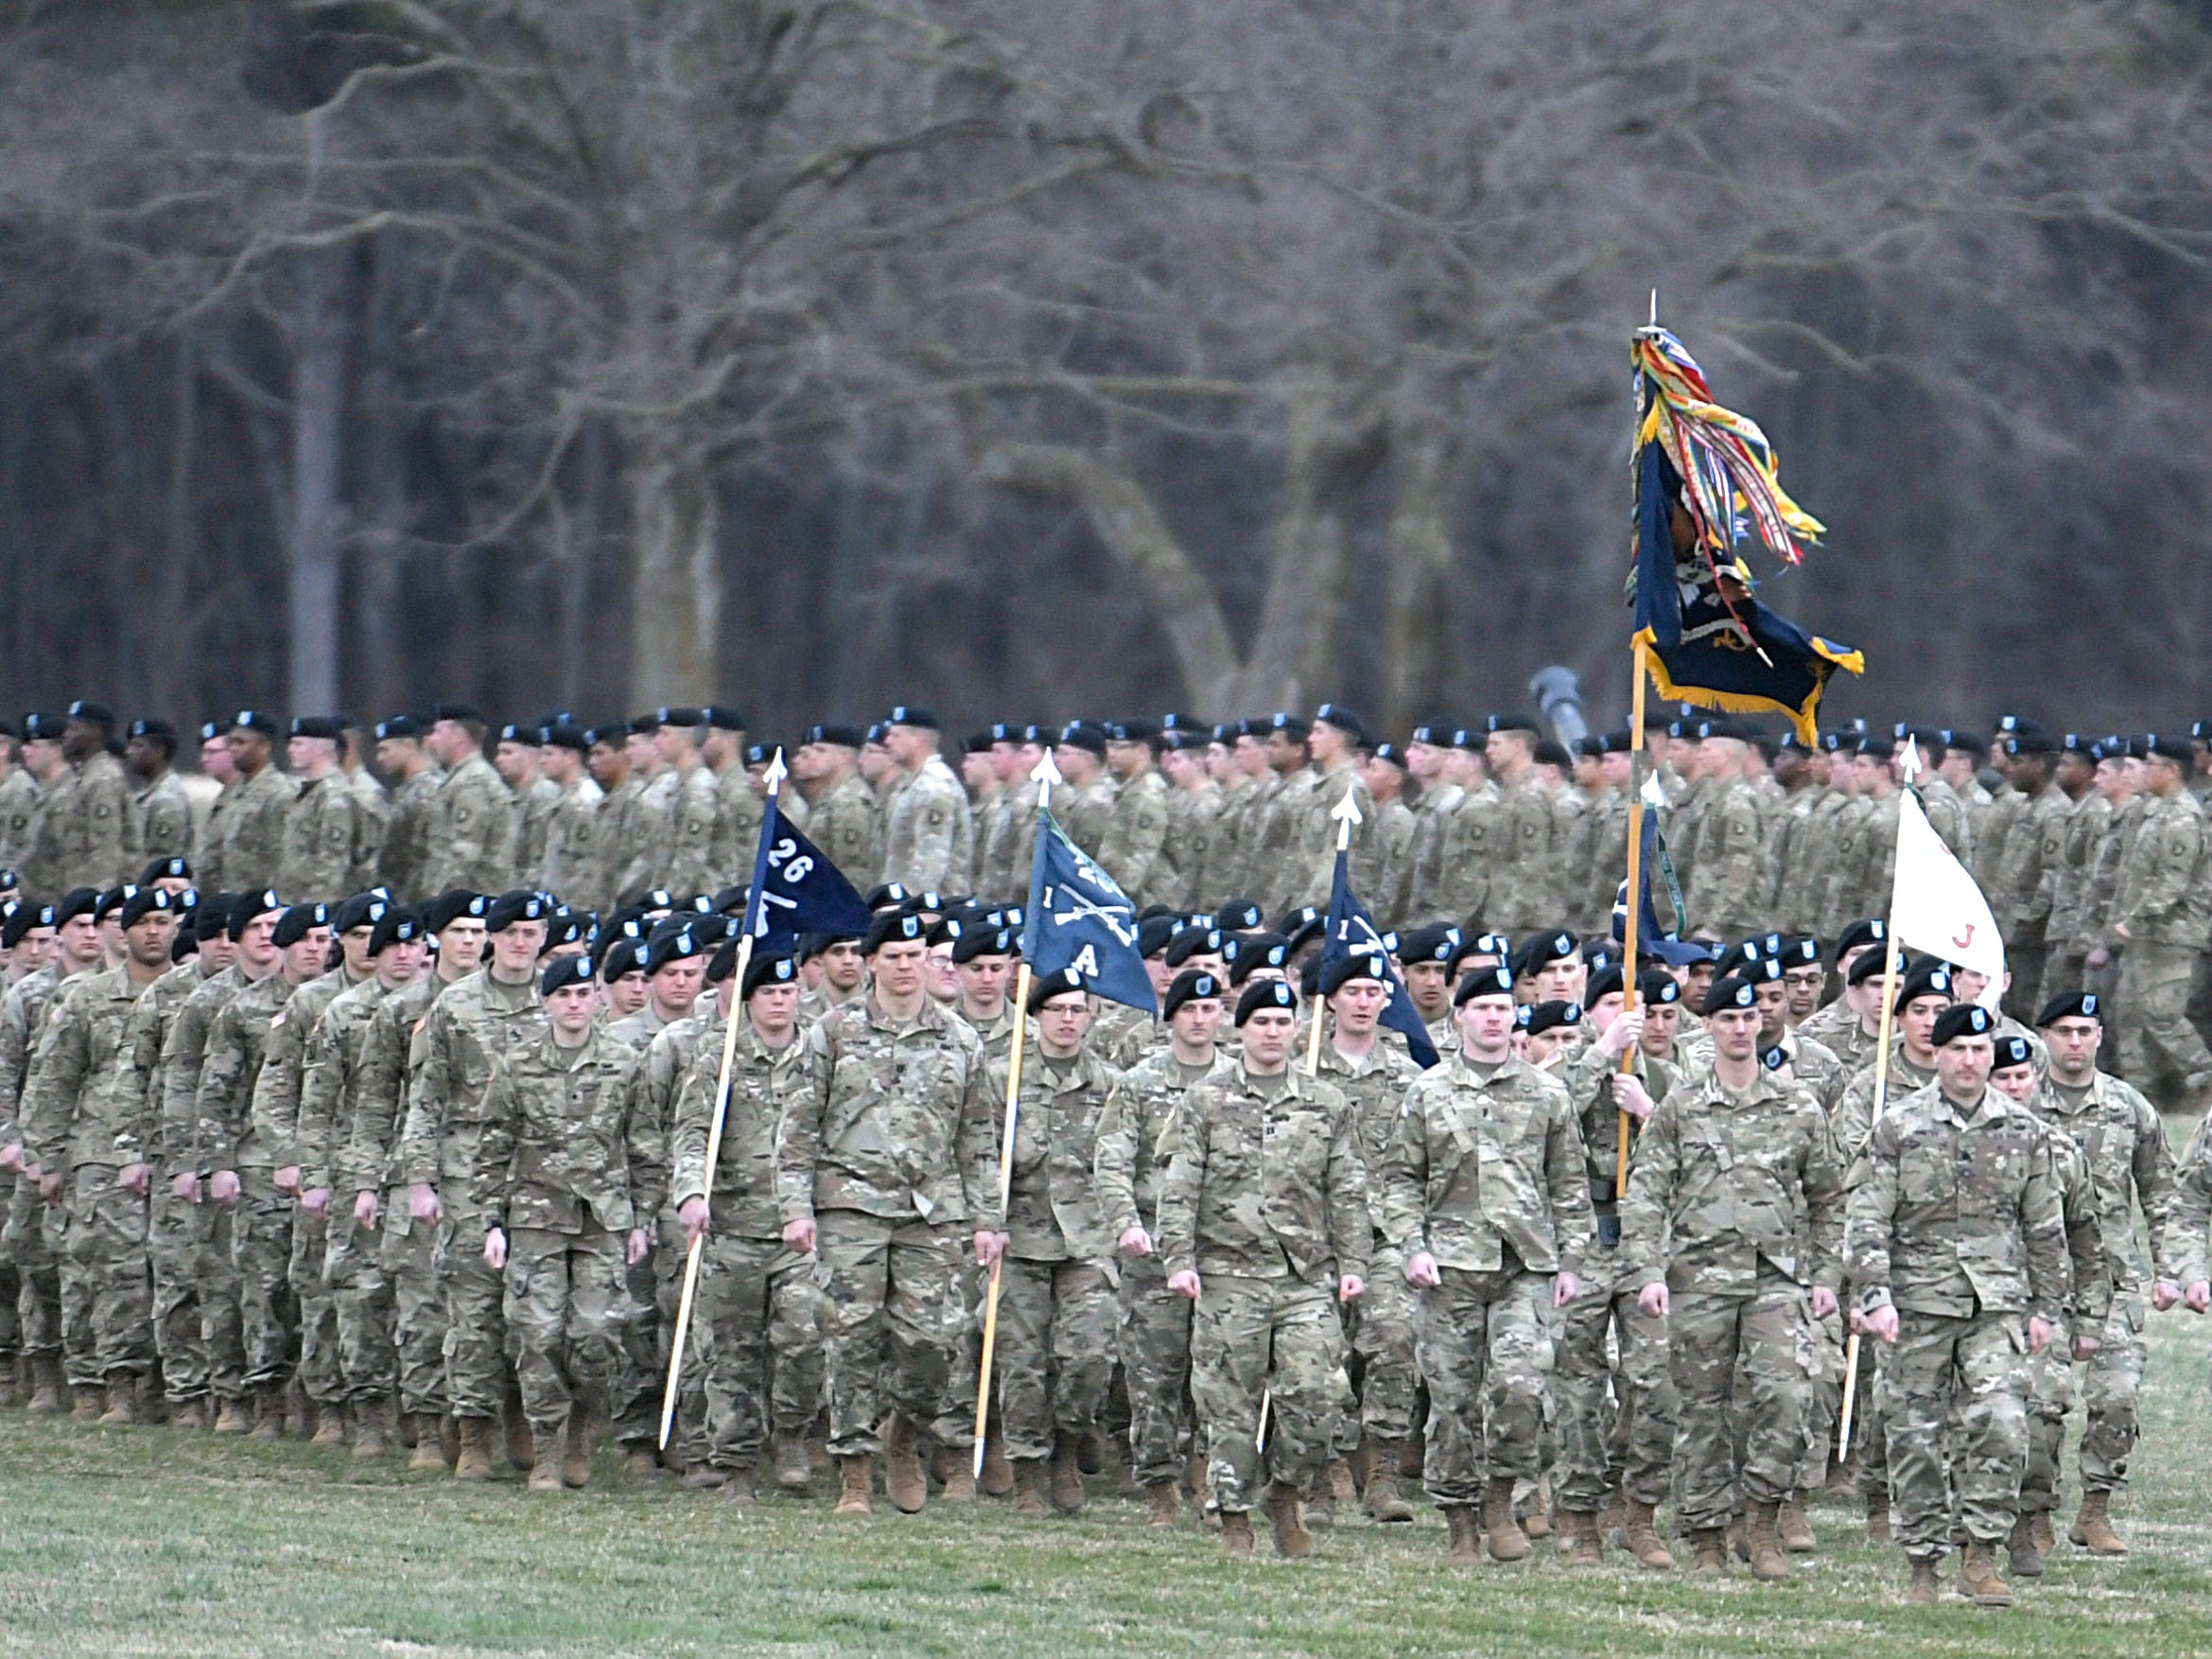 Troops march during a 101st Airborne Division (Air Assault) and Fort Campbell Division Change of Command ceremony in Fort Campbell, KY on Thursday, Feb. 14, 2019.